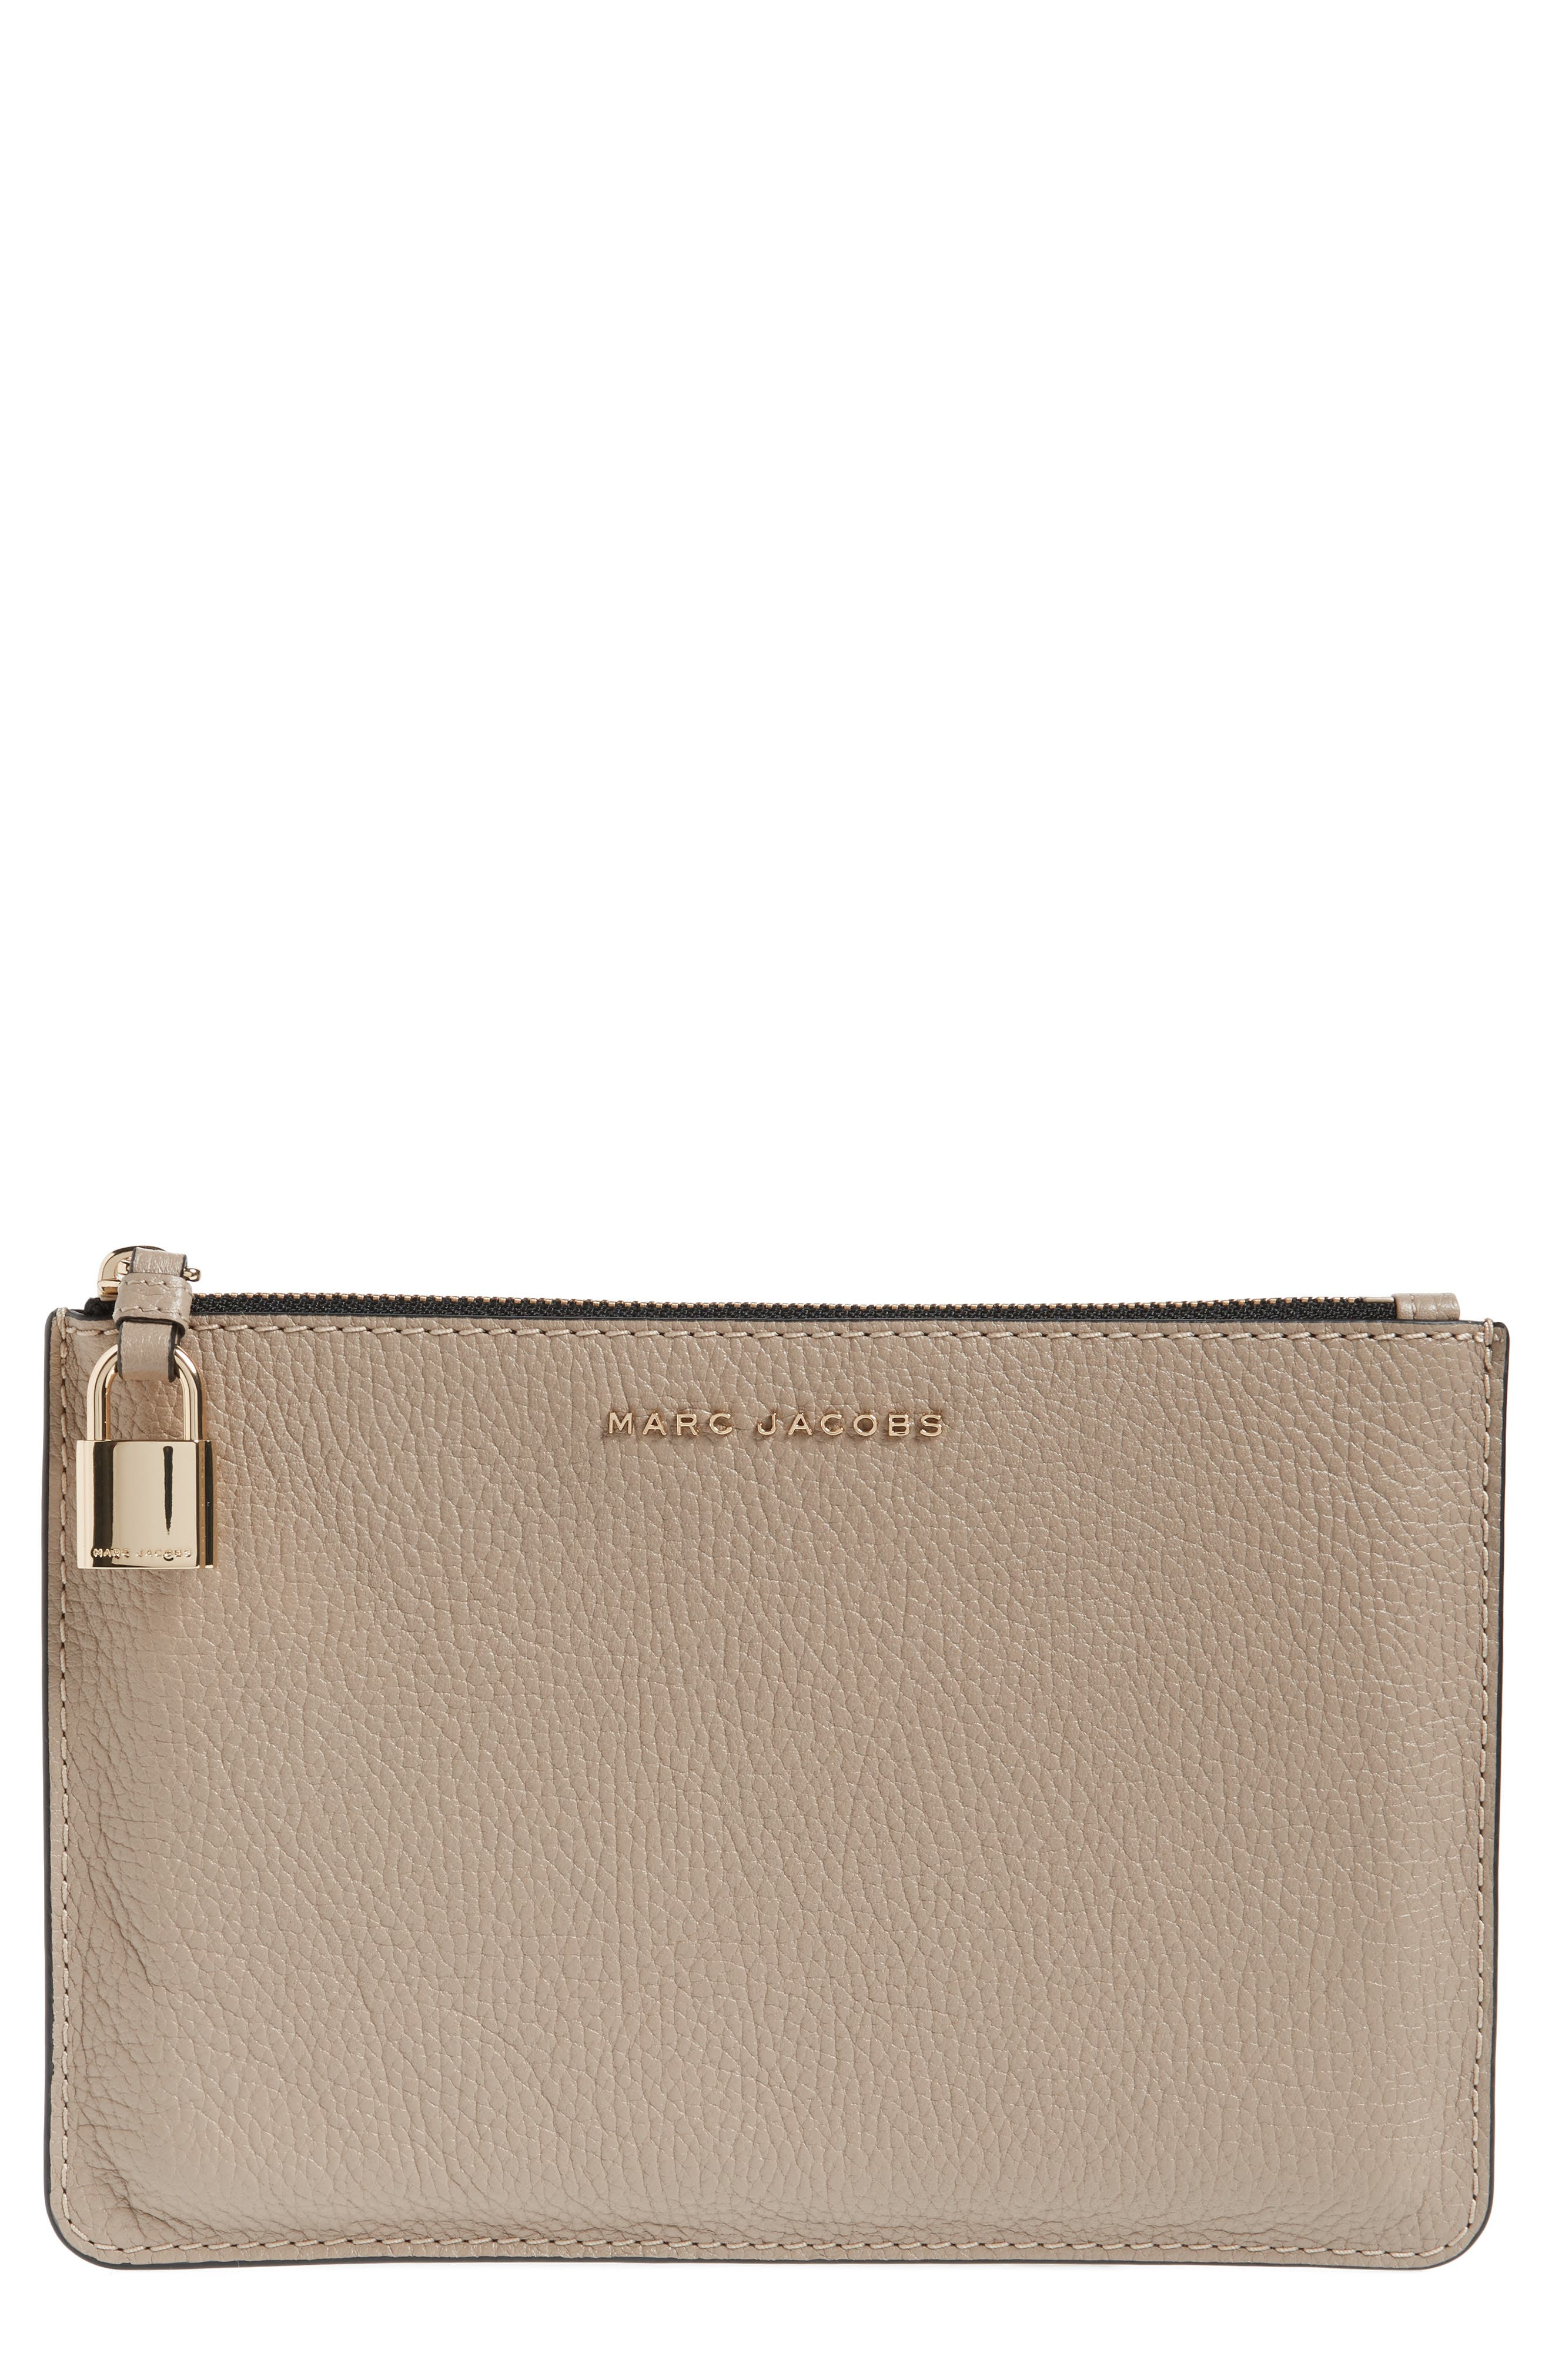 MARC JACOBS Medium Leather Pouch